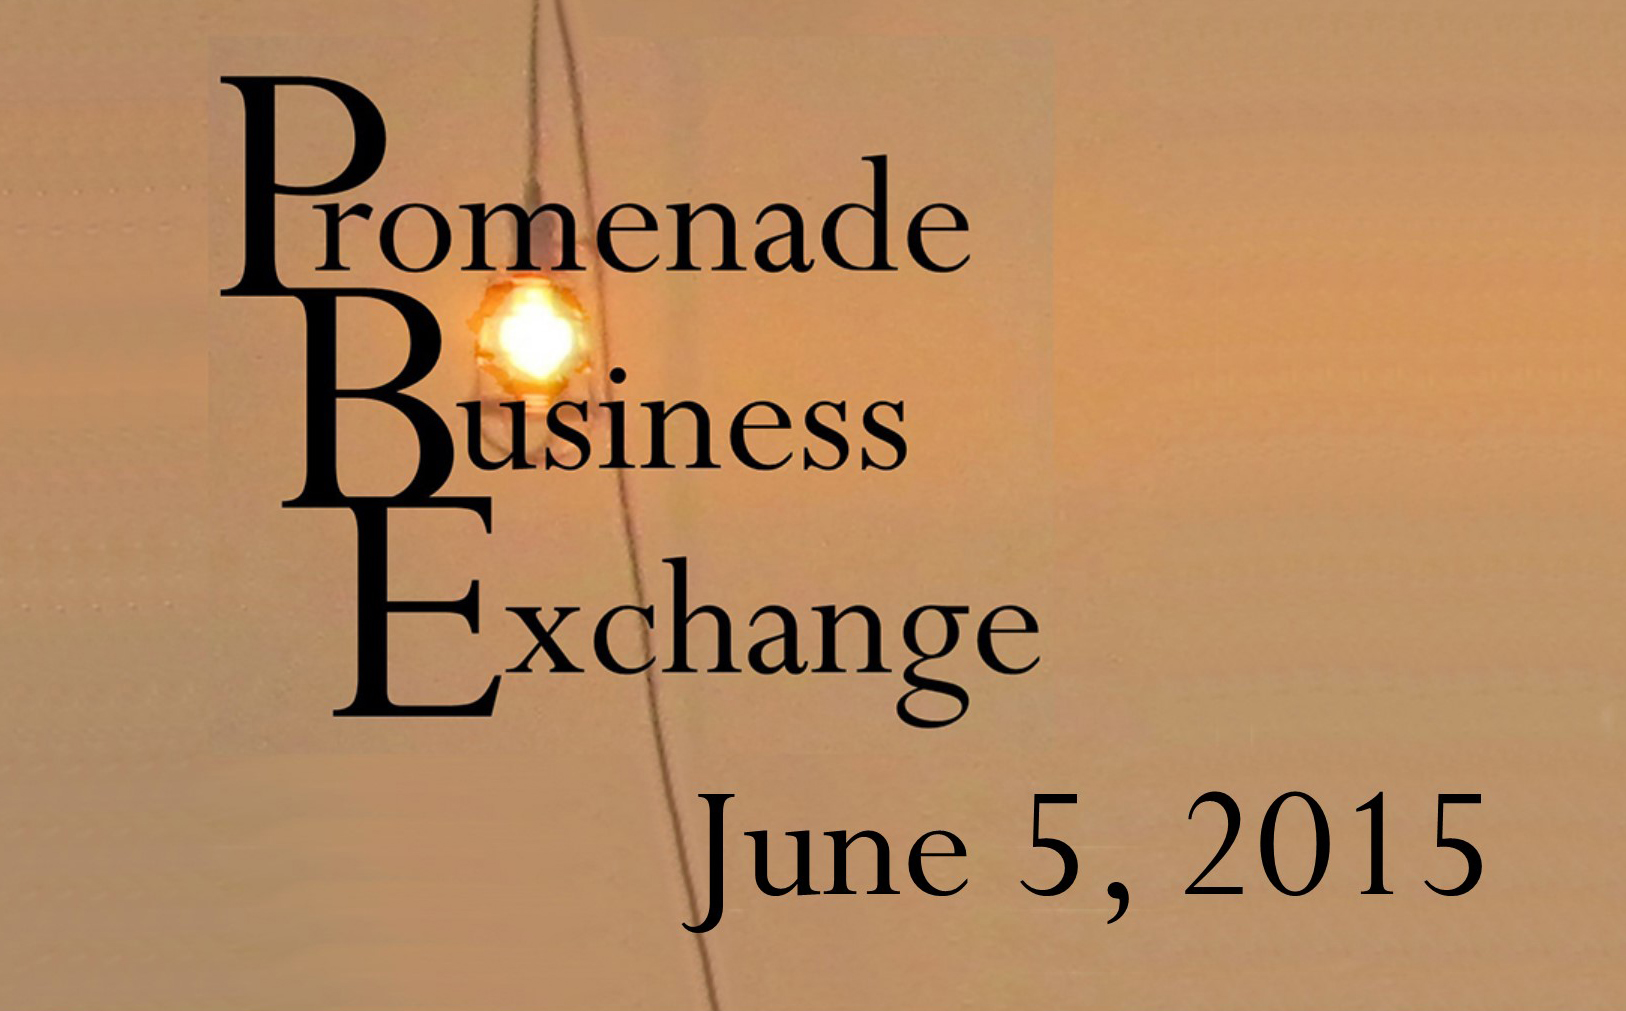 Promenade Business Exchange June 5, 2015